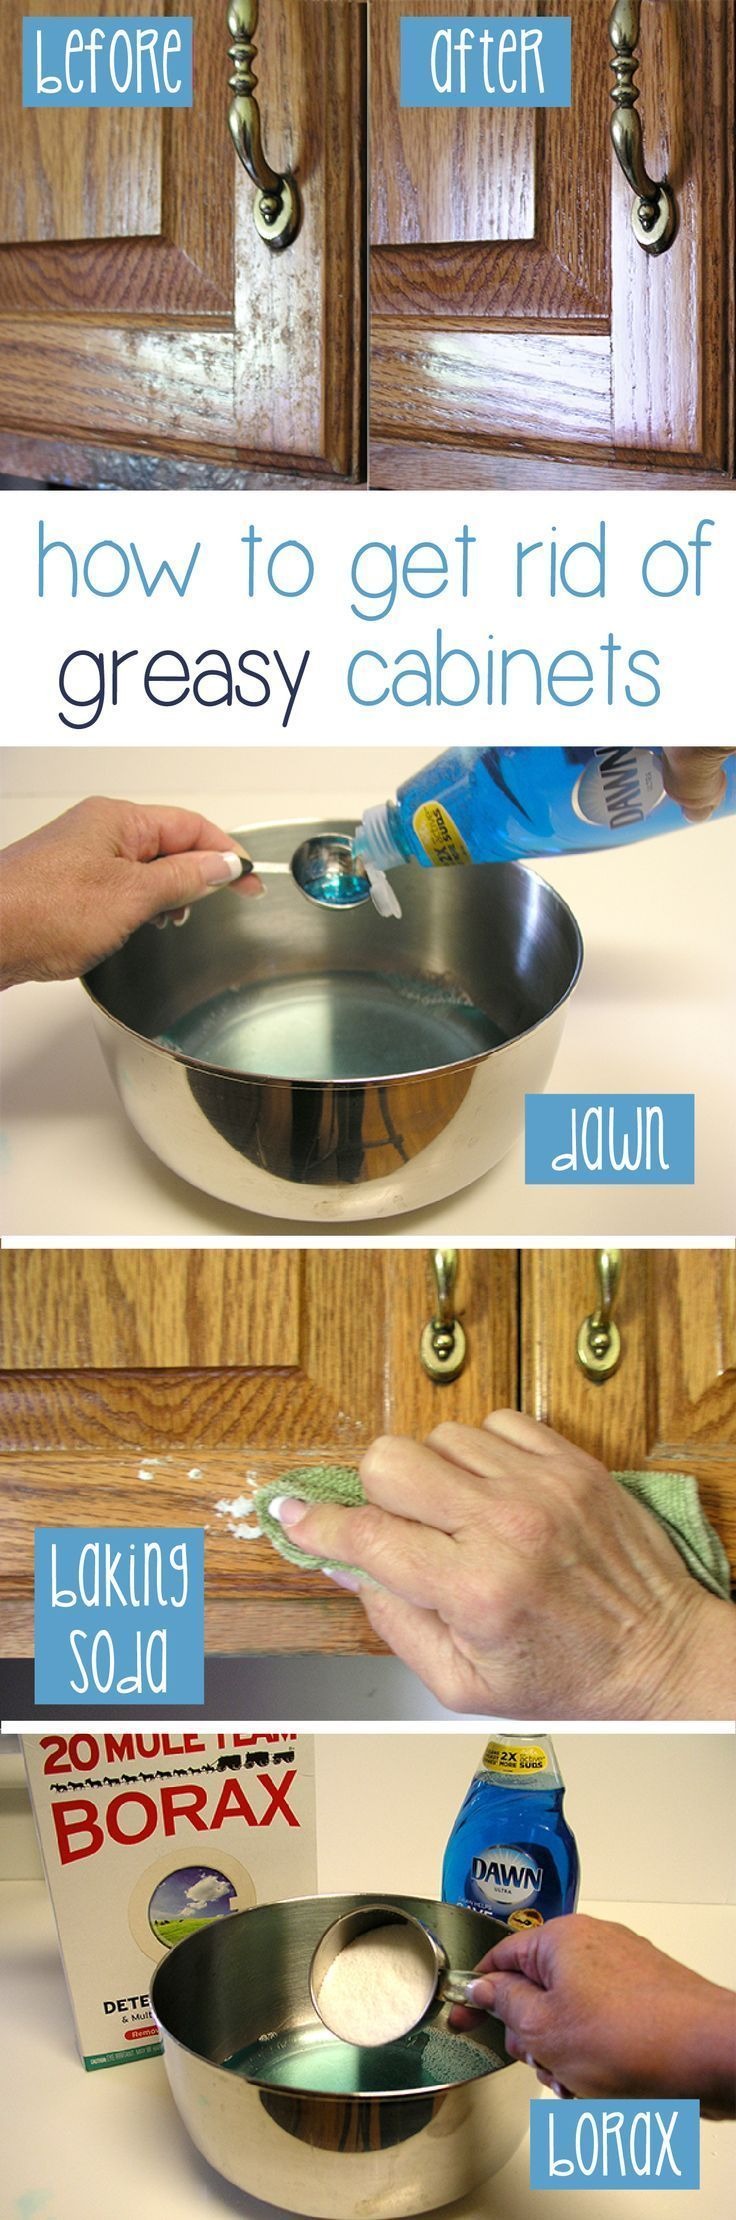 lovely How To Get Grease And Grime Off Kitchen Cabinets #3: How to Clean Grease From Kitchen Cabinet Doors